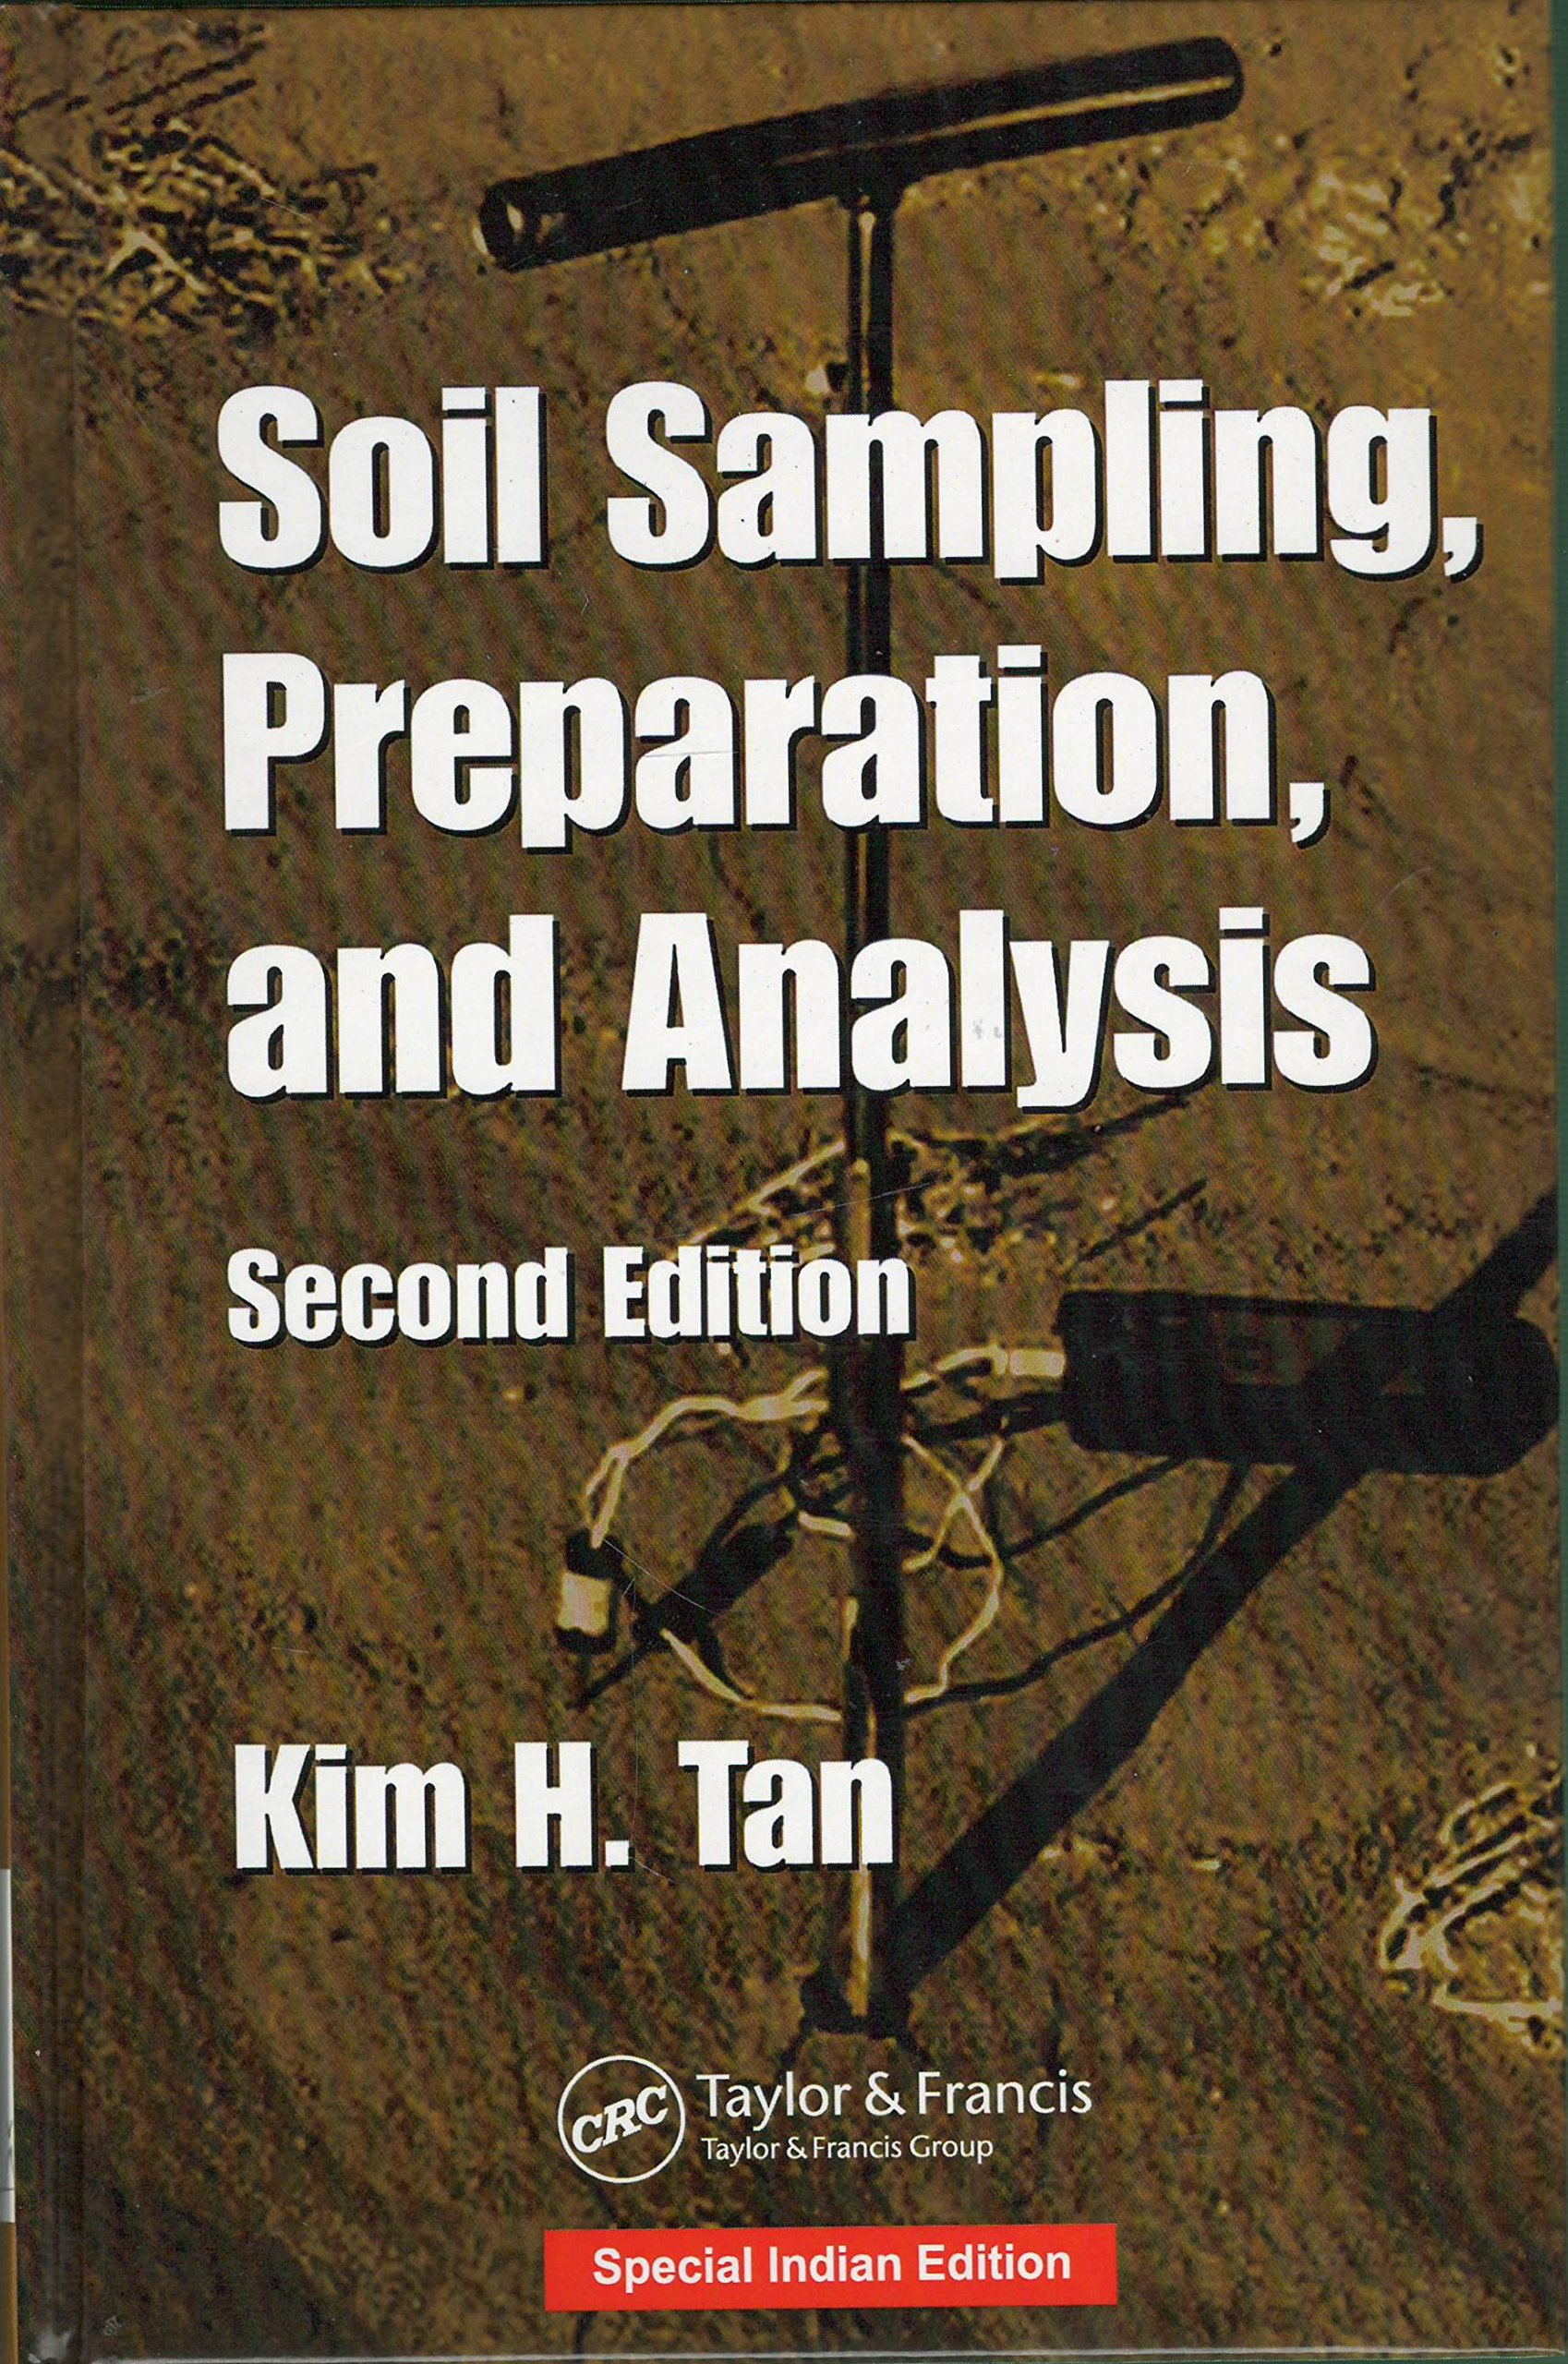 Download SOIL SAMPLING, PREPARATION, AND ANALYSIS, 2ND EDITION ebook